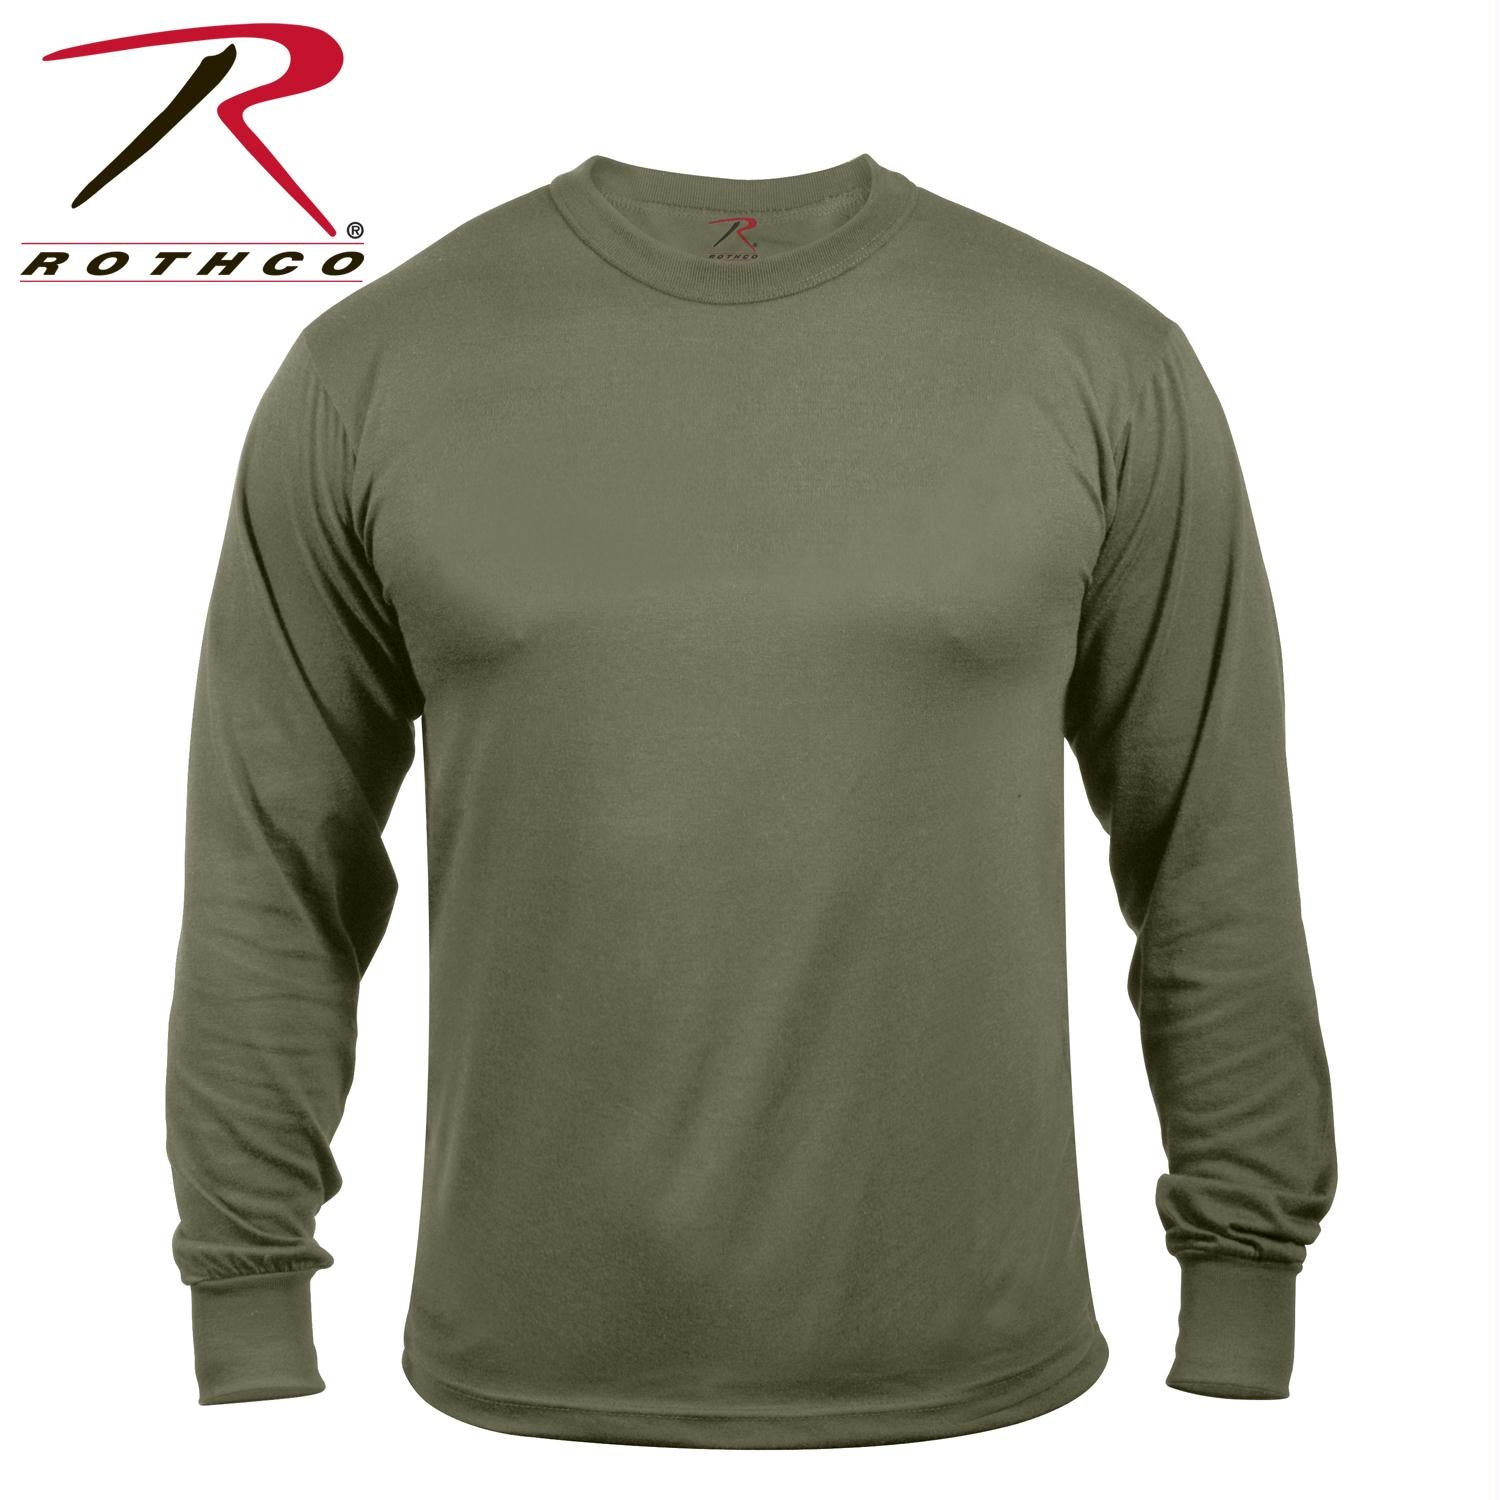 Rothco Moisture Wicking Long Sleeve T-Shirt - Olive Drab / XL